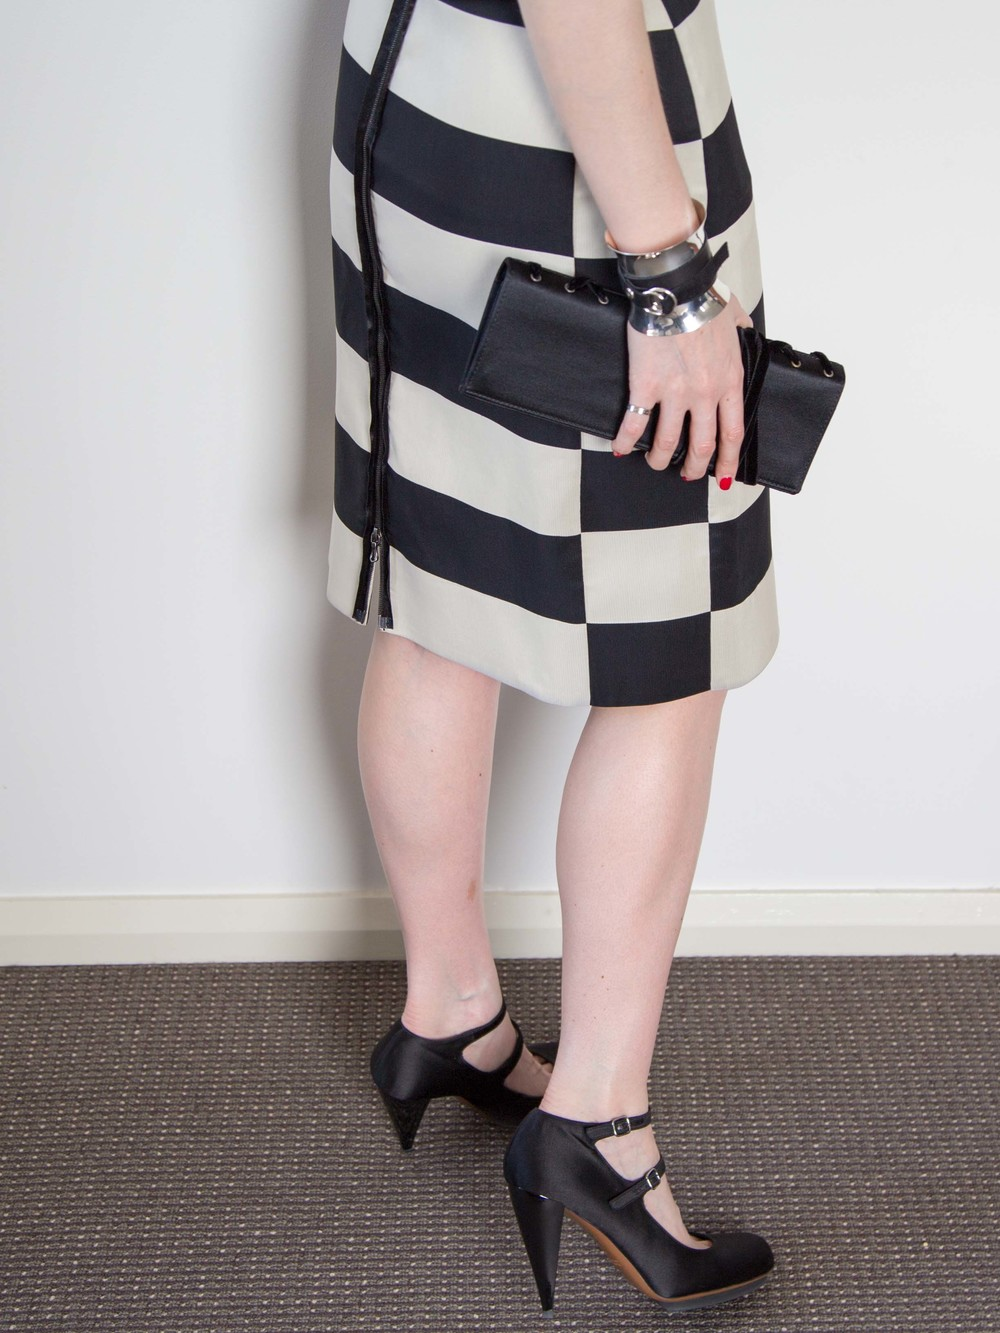 Lanvin Striped Dress, Georg Jensen Cuff, Yves Saint Laurent Vintage Clutch, Lanvin Silk Satin Heels, Cartier Love Ring